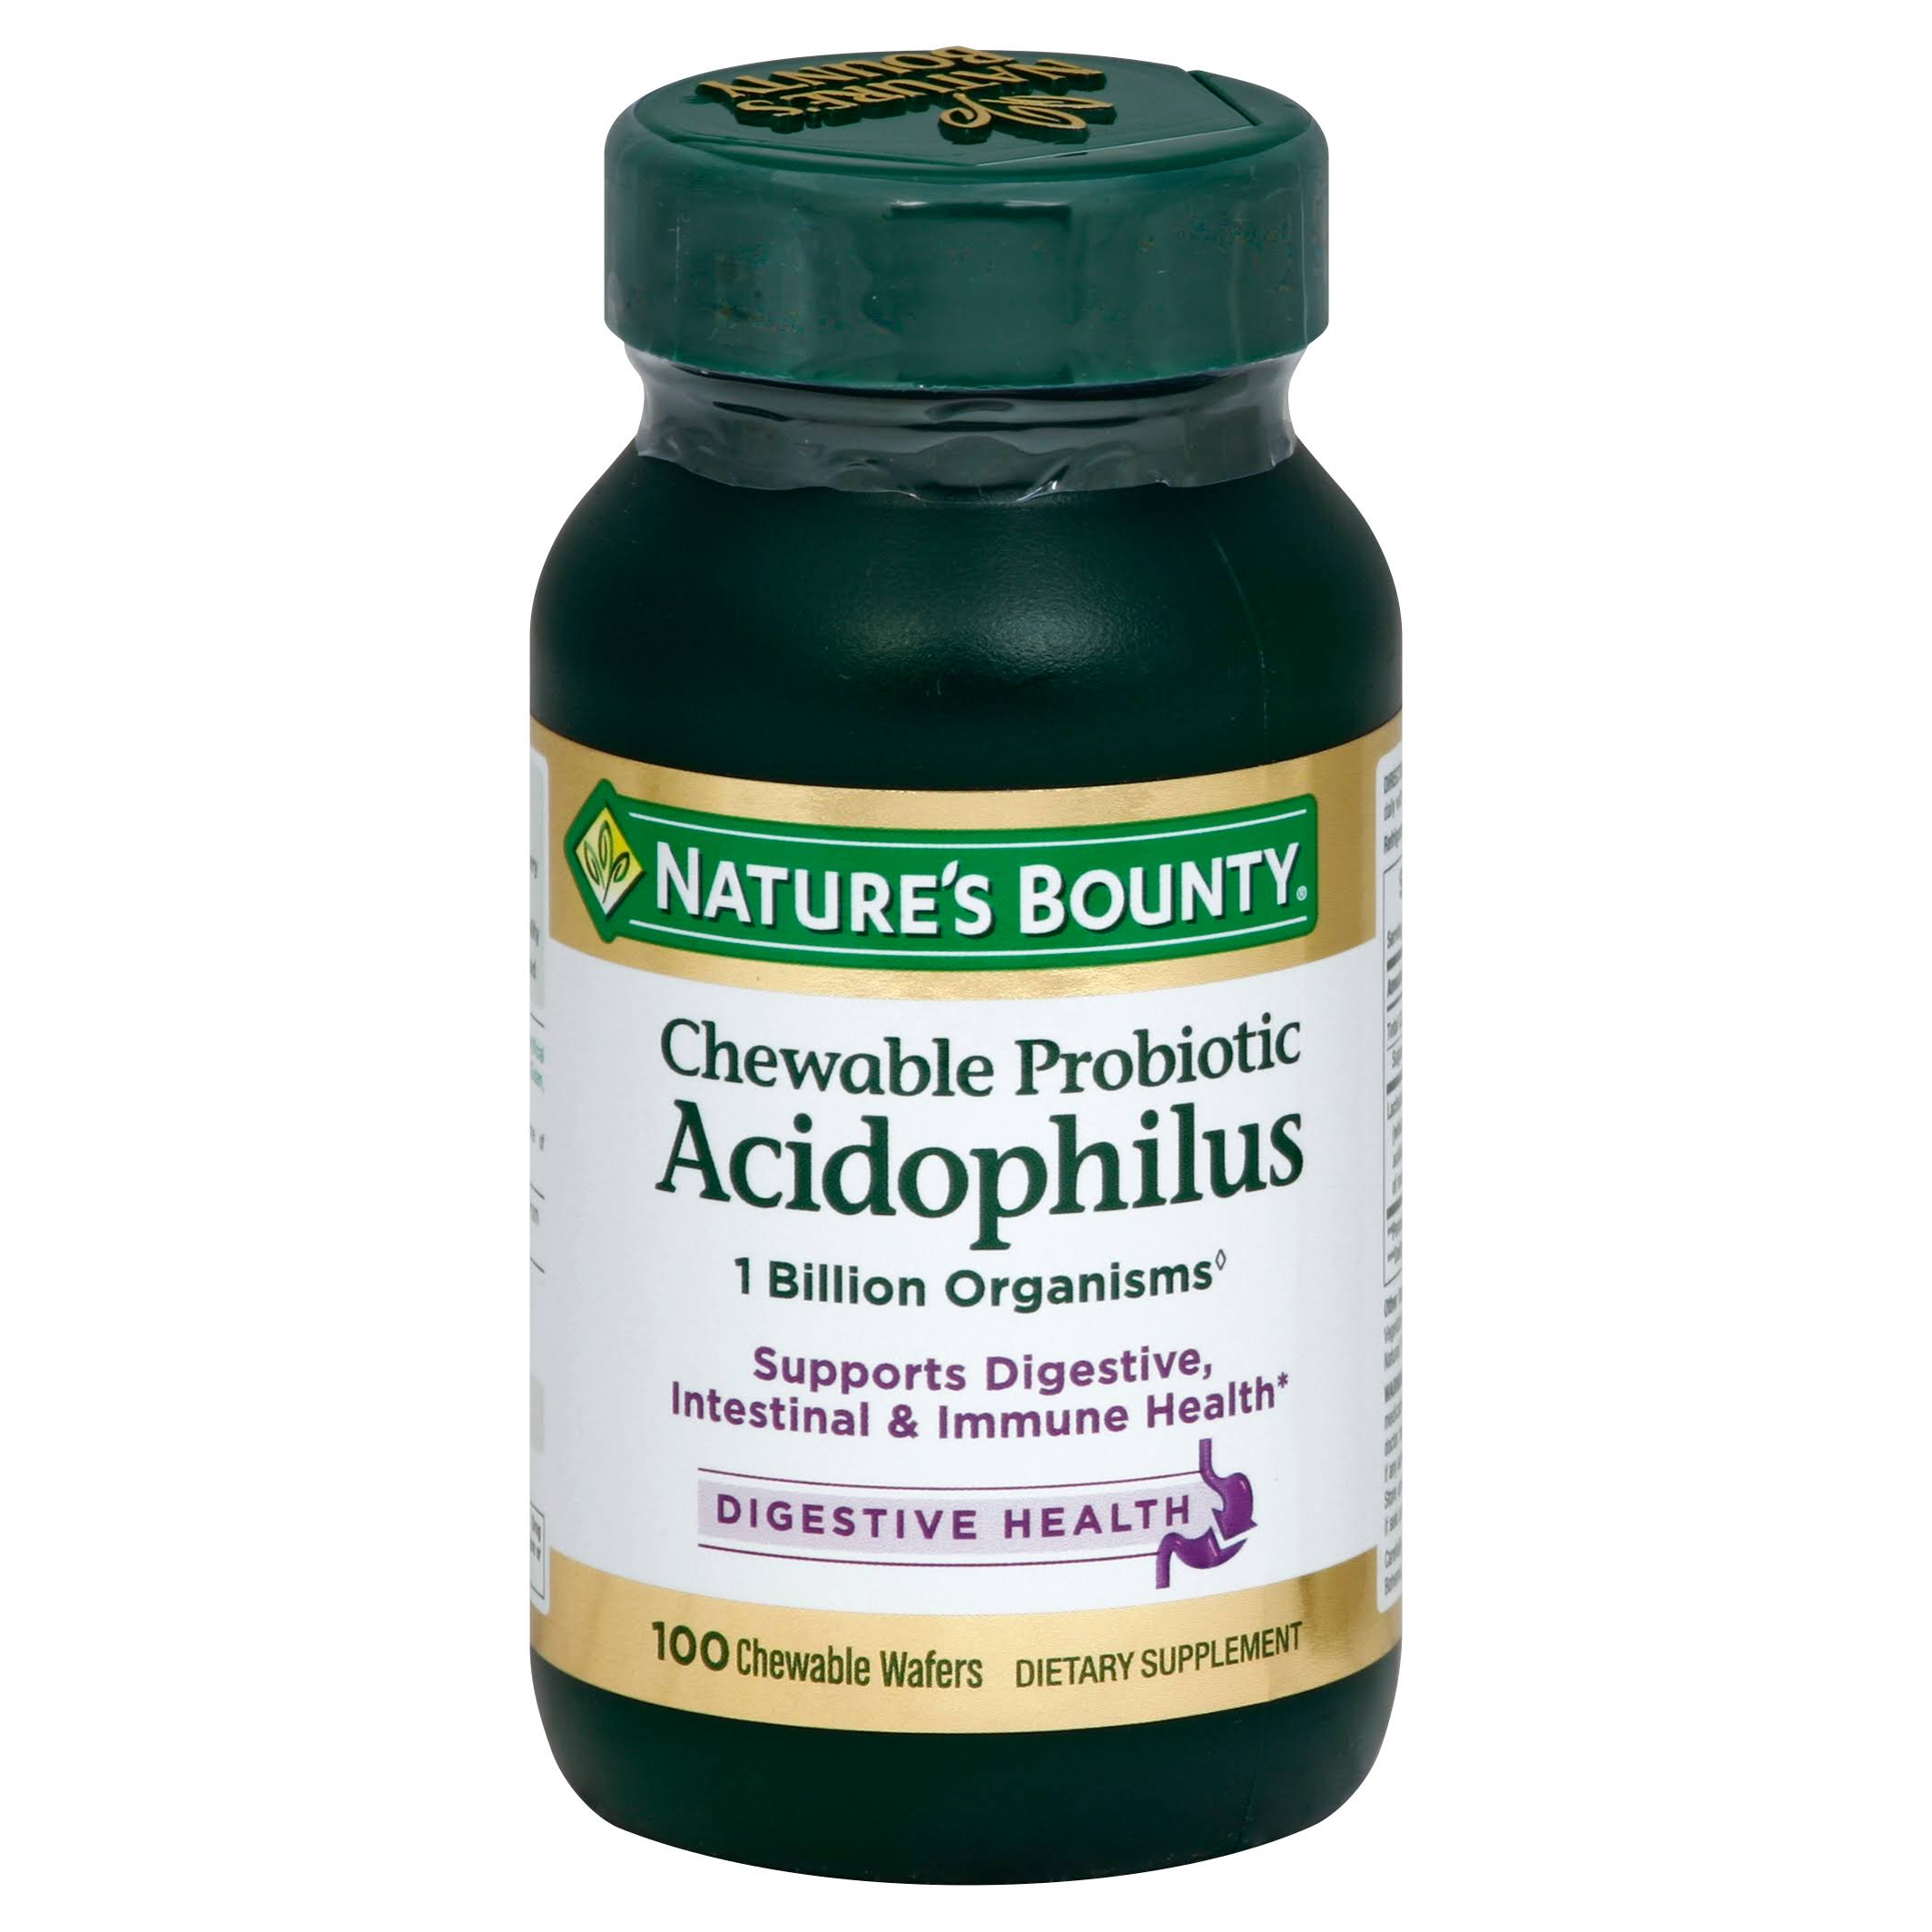 Nature's Bounty Acidophilus - 100 Chewable Wafers